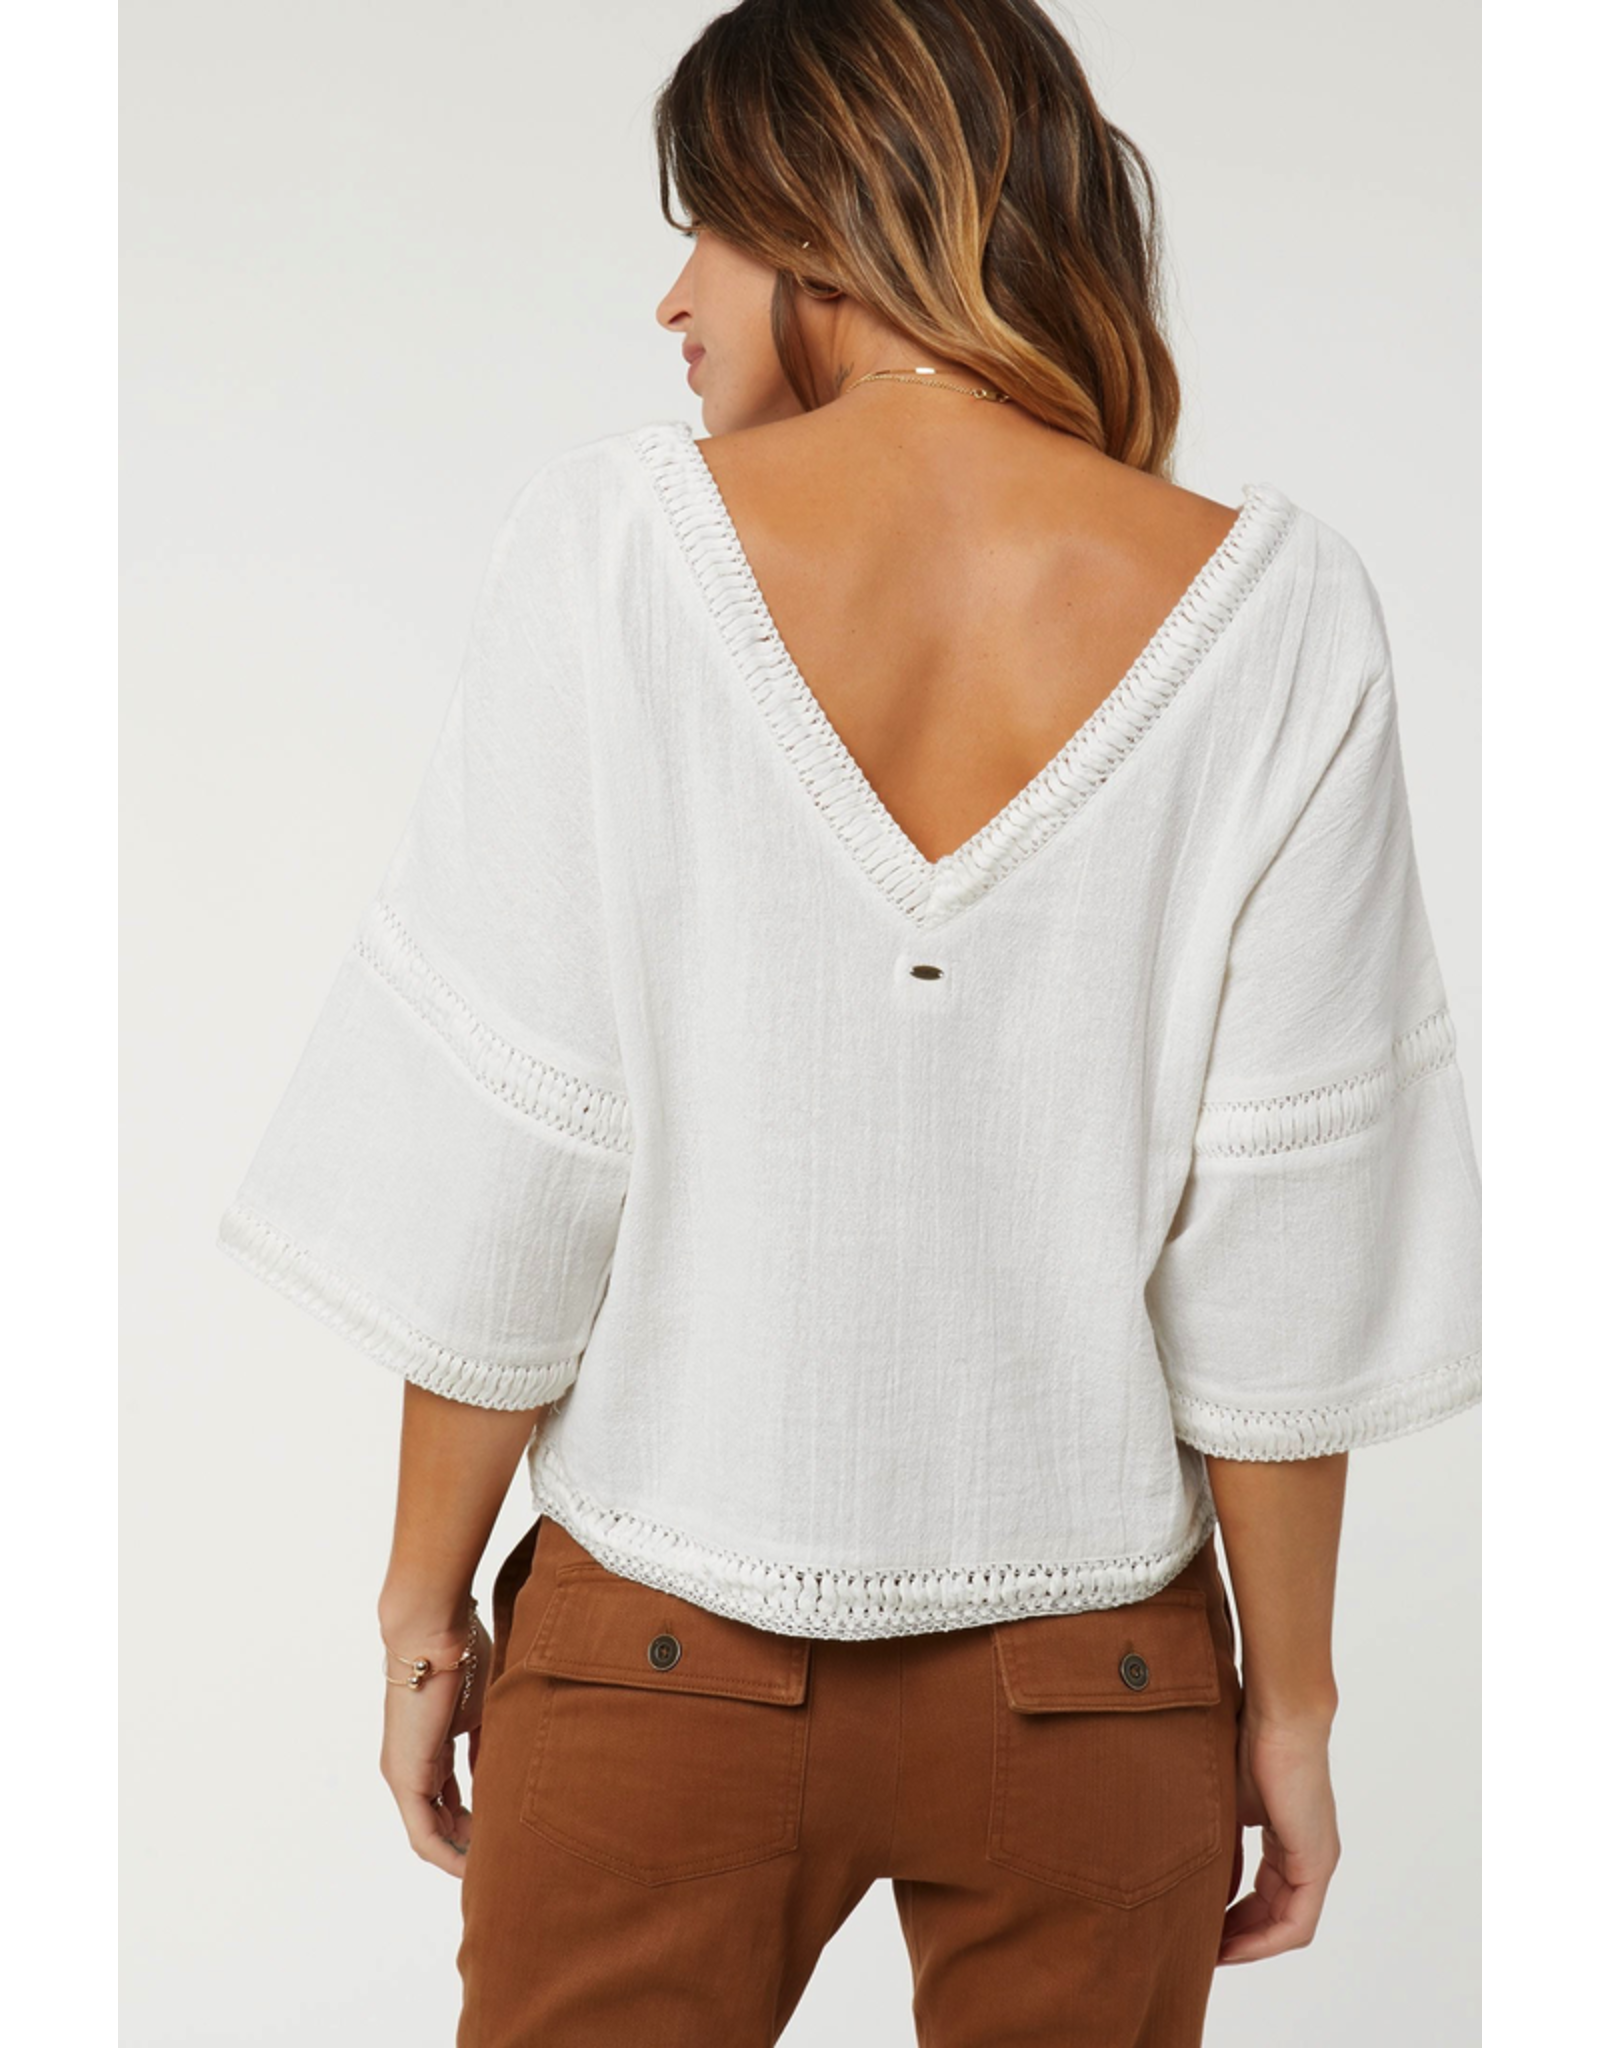 ONEILL AMARYLL TOP